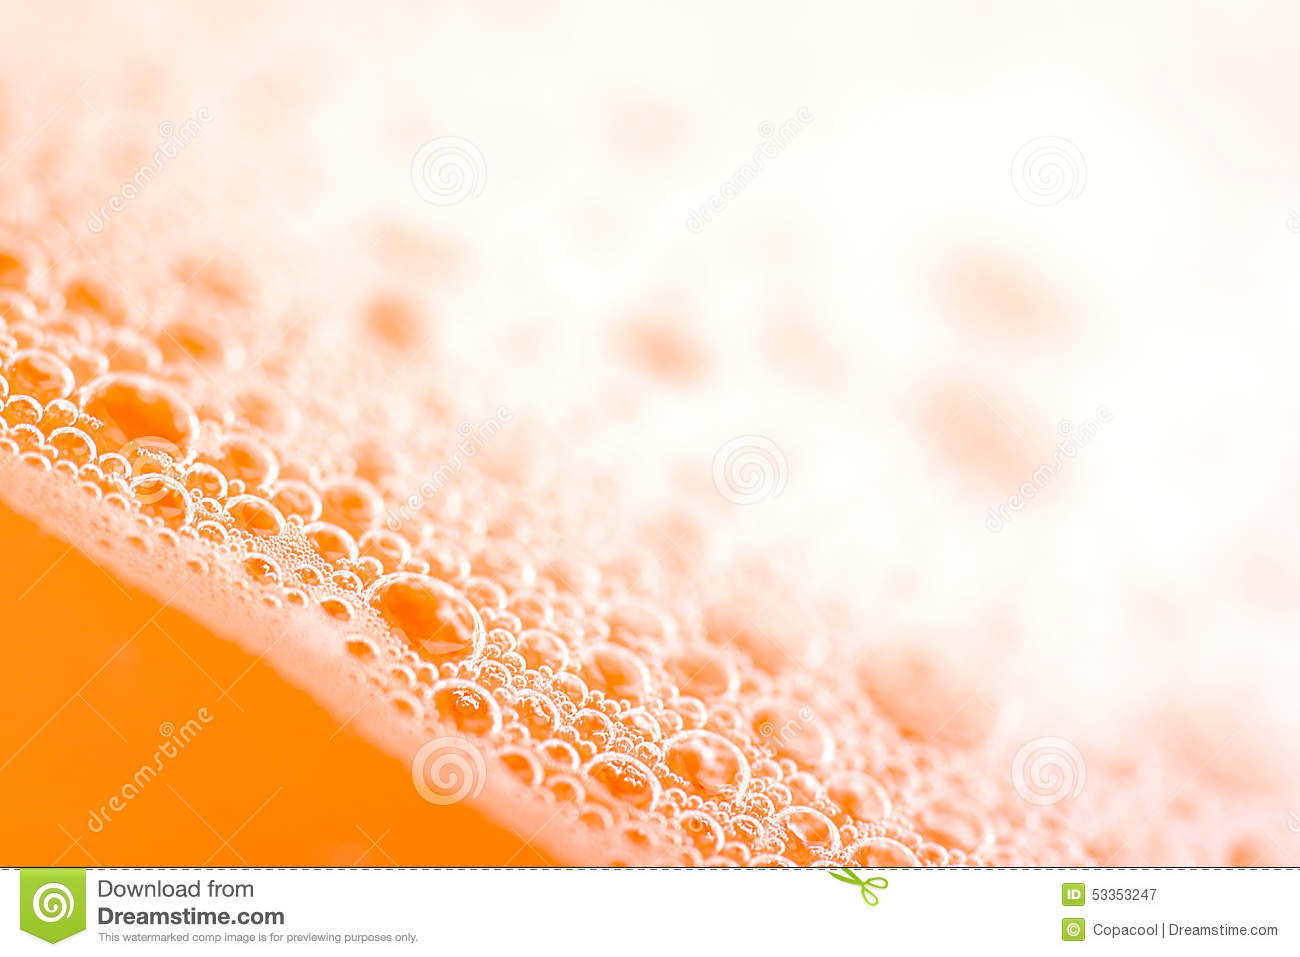 Orange Water Drops Close Up Royalty Free Stock Photography